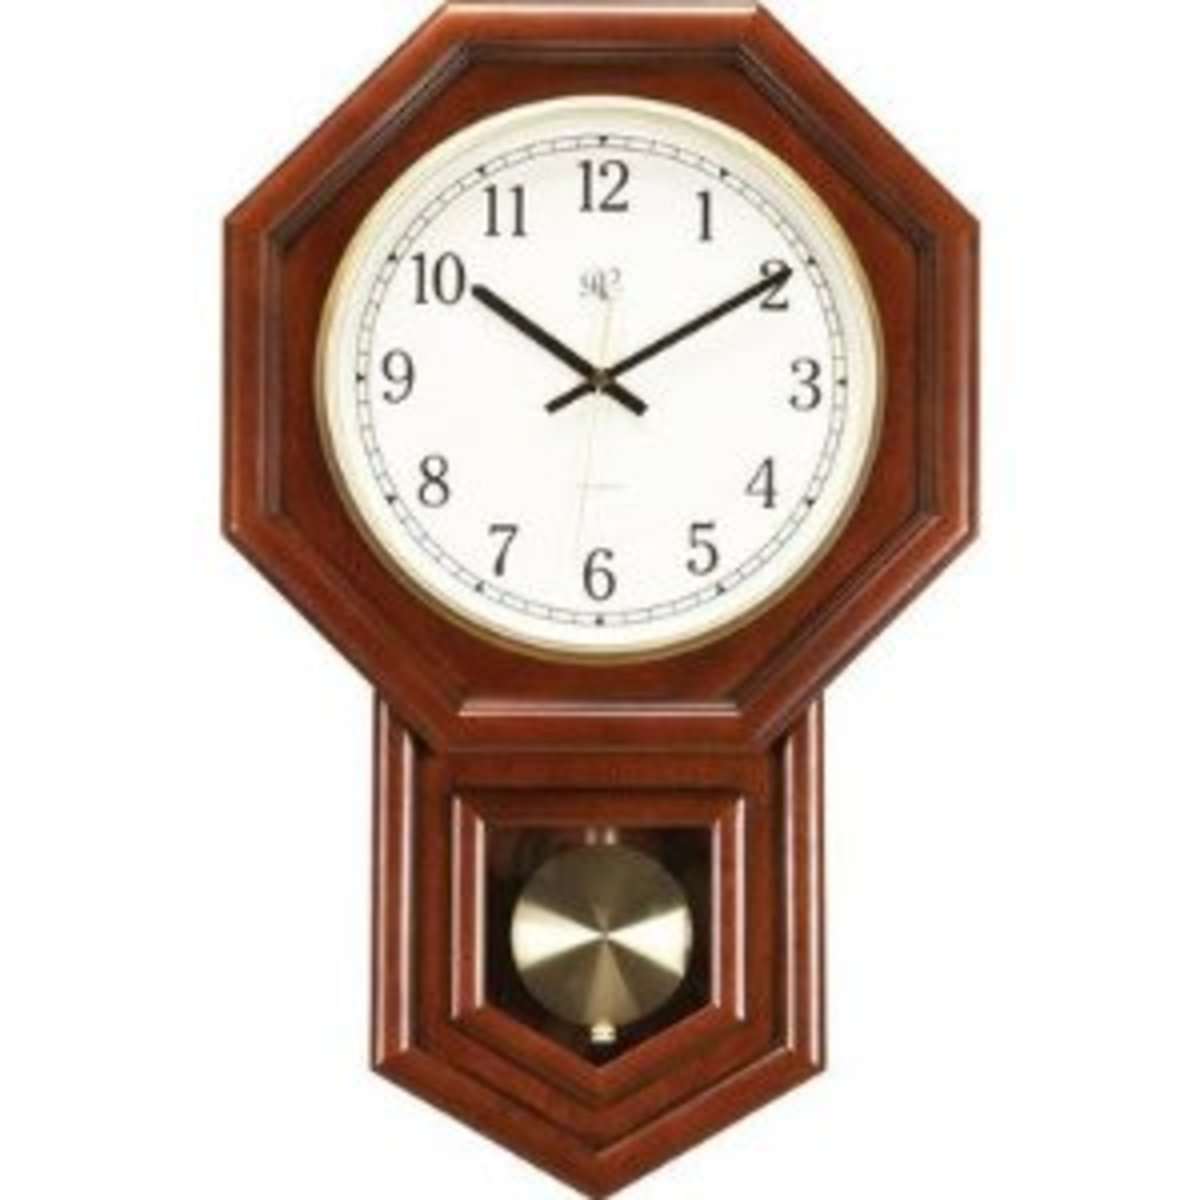 River City Clocks 801-403C 21-Inch Radio-controlled Schoolhouse Clock